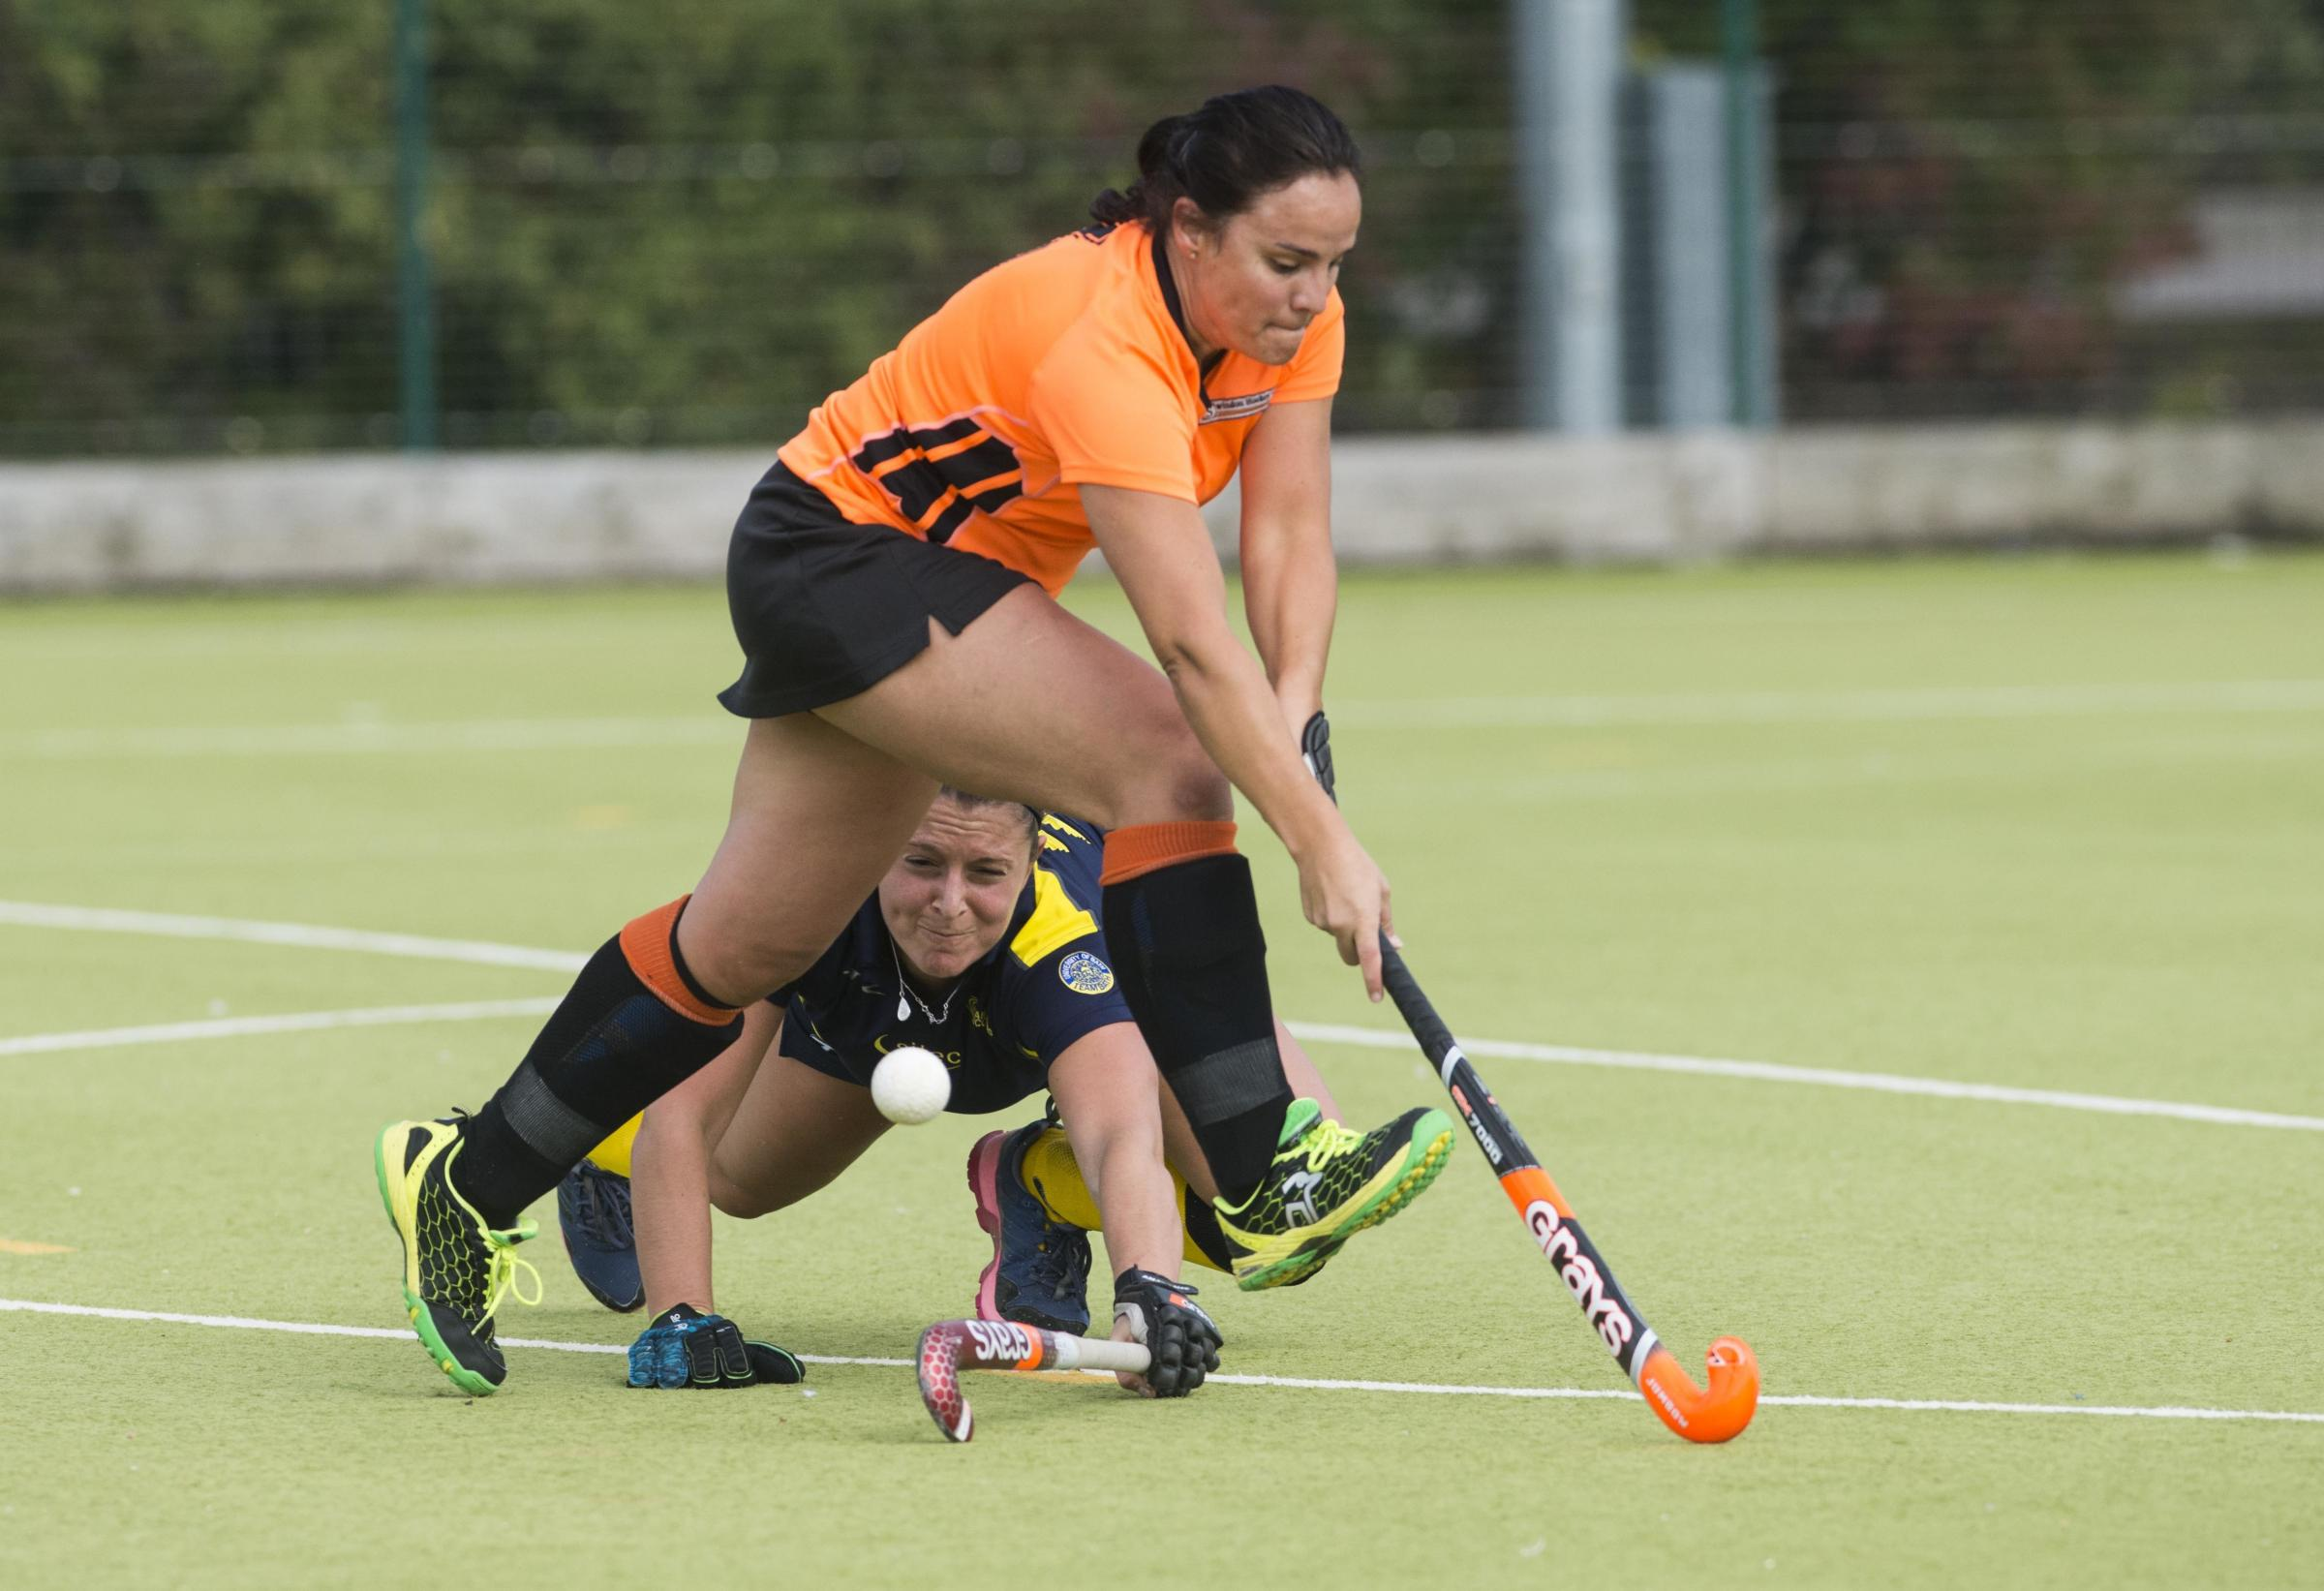 Swindon Hockey v TeamBath BUCCS 2.Pictured Swindon Player Adriane Boullosa.30/09/17.Pictures Clare Green/ www.claregreenphotography.com.